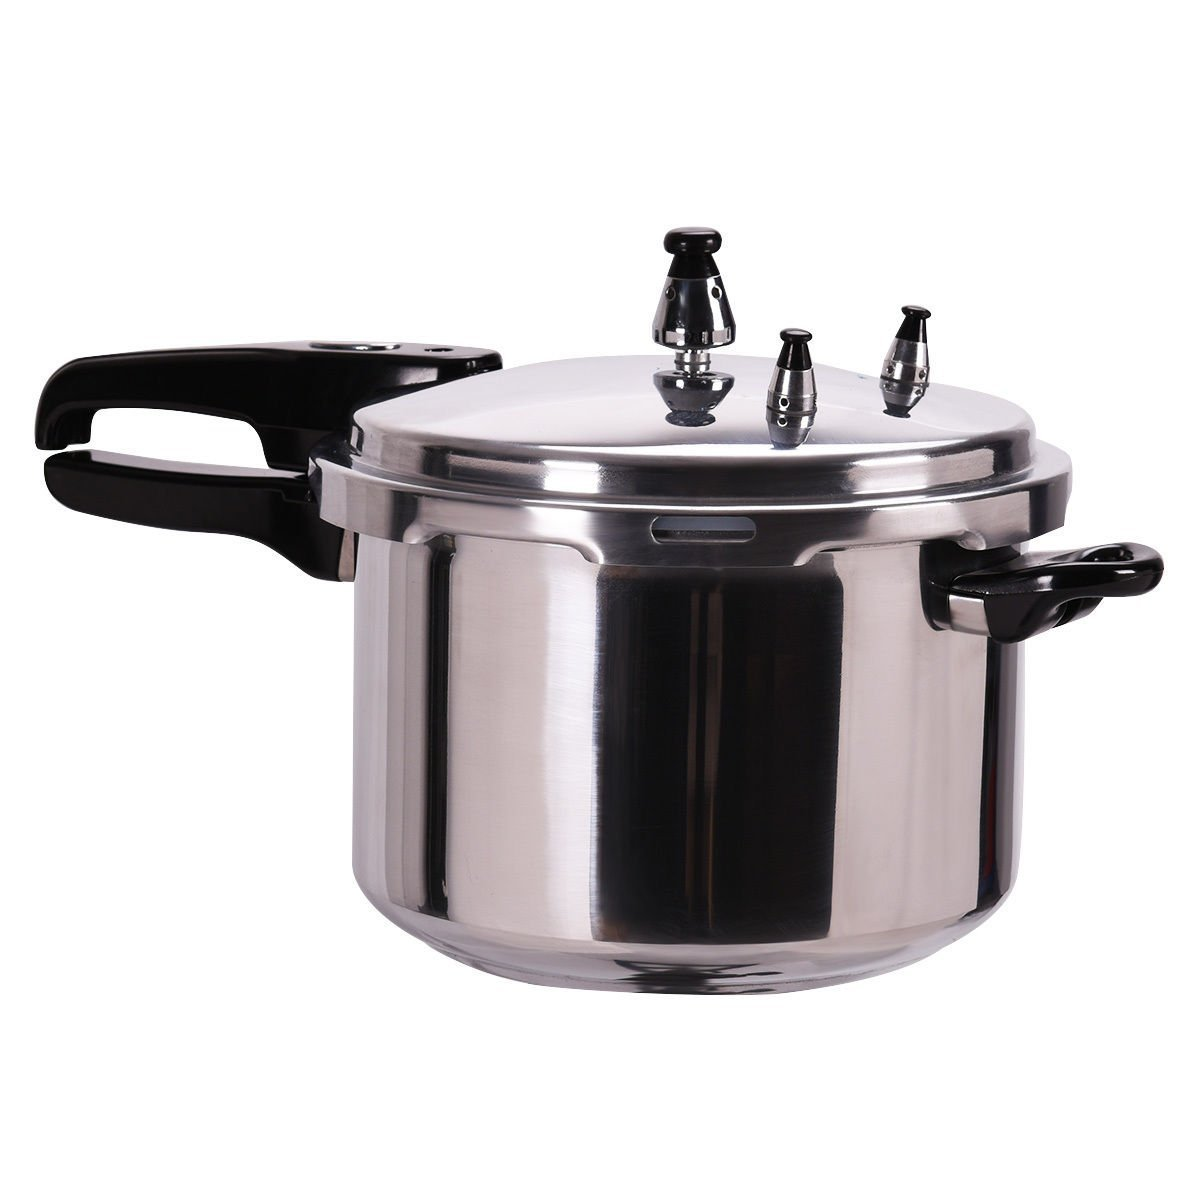 Costway 6-Quart Aluminum Pressure Cooker Fast Cooker Canner Pot Kitchen by COSTWAY